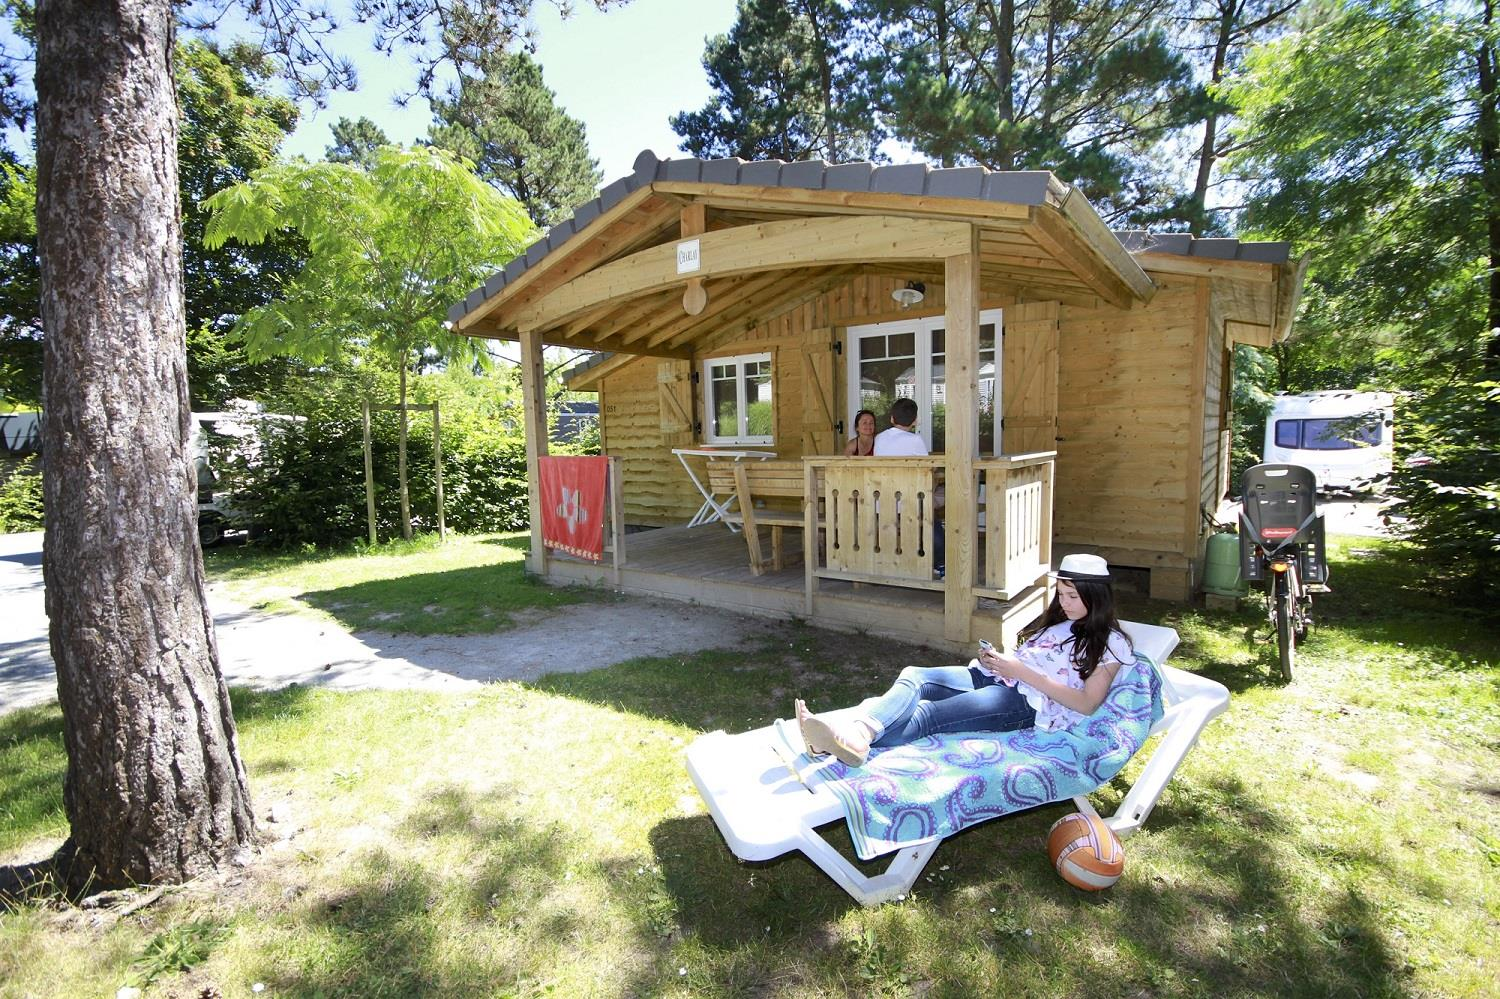 Location - Chalet Le Titan 2 Chambres - 35M² - Nantes Camping